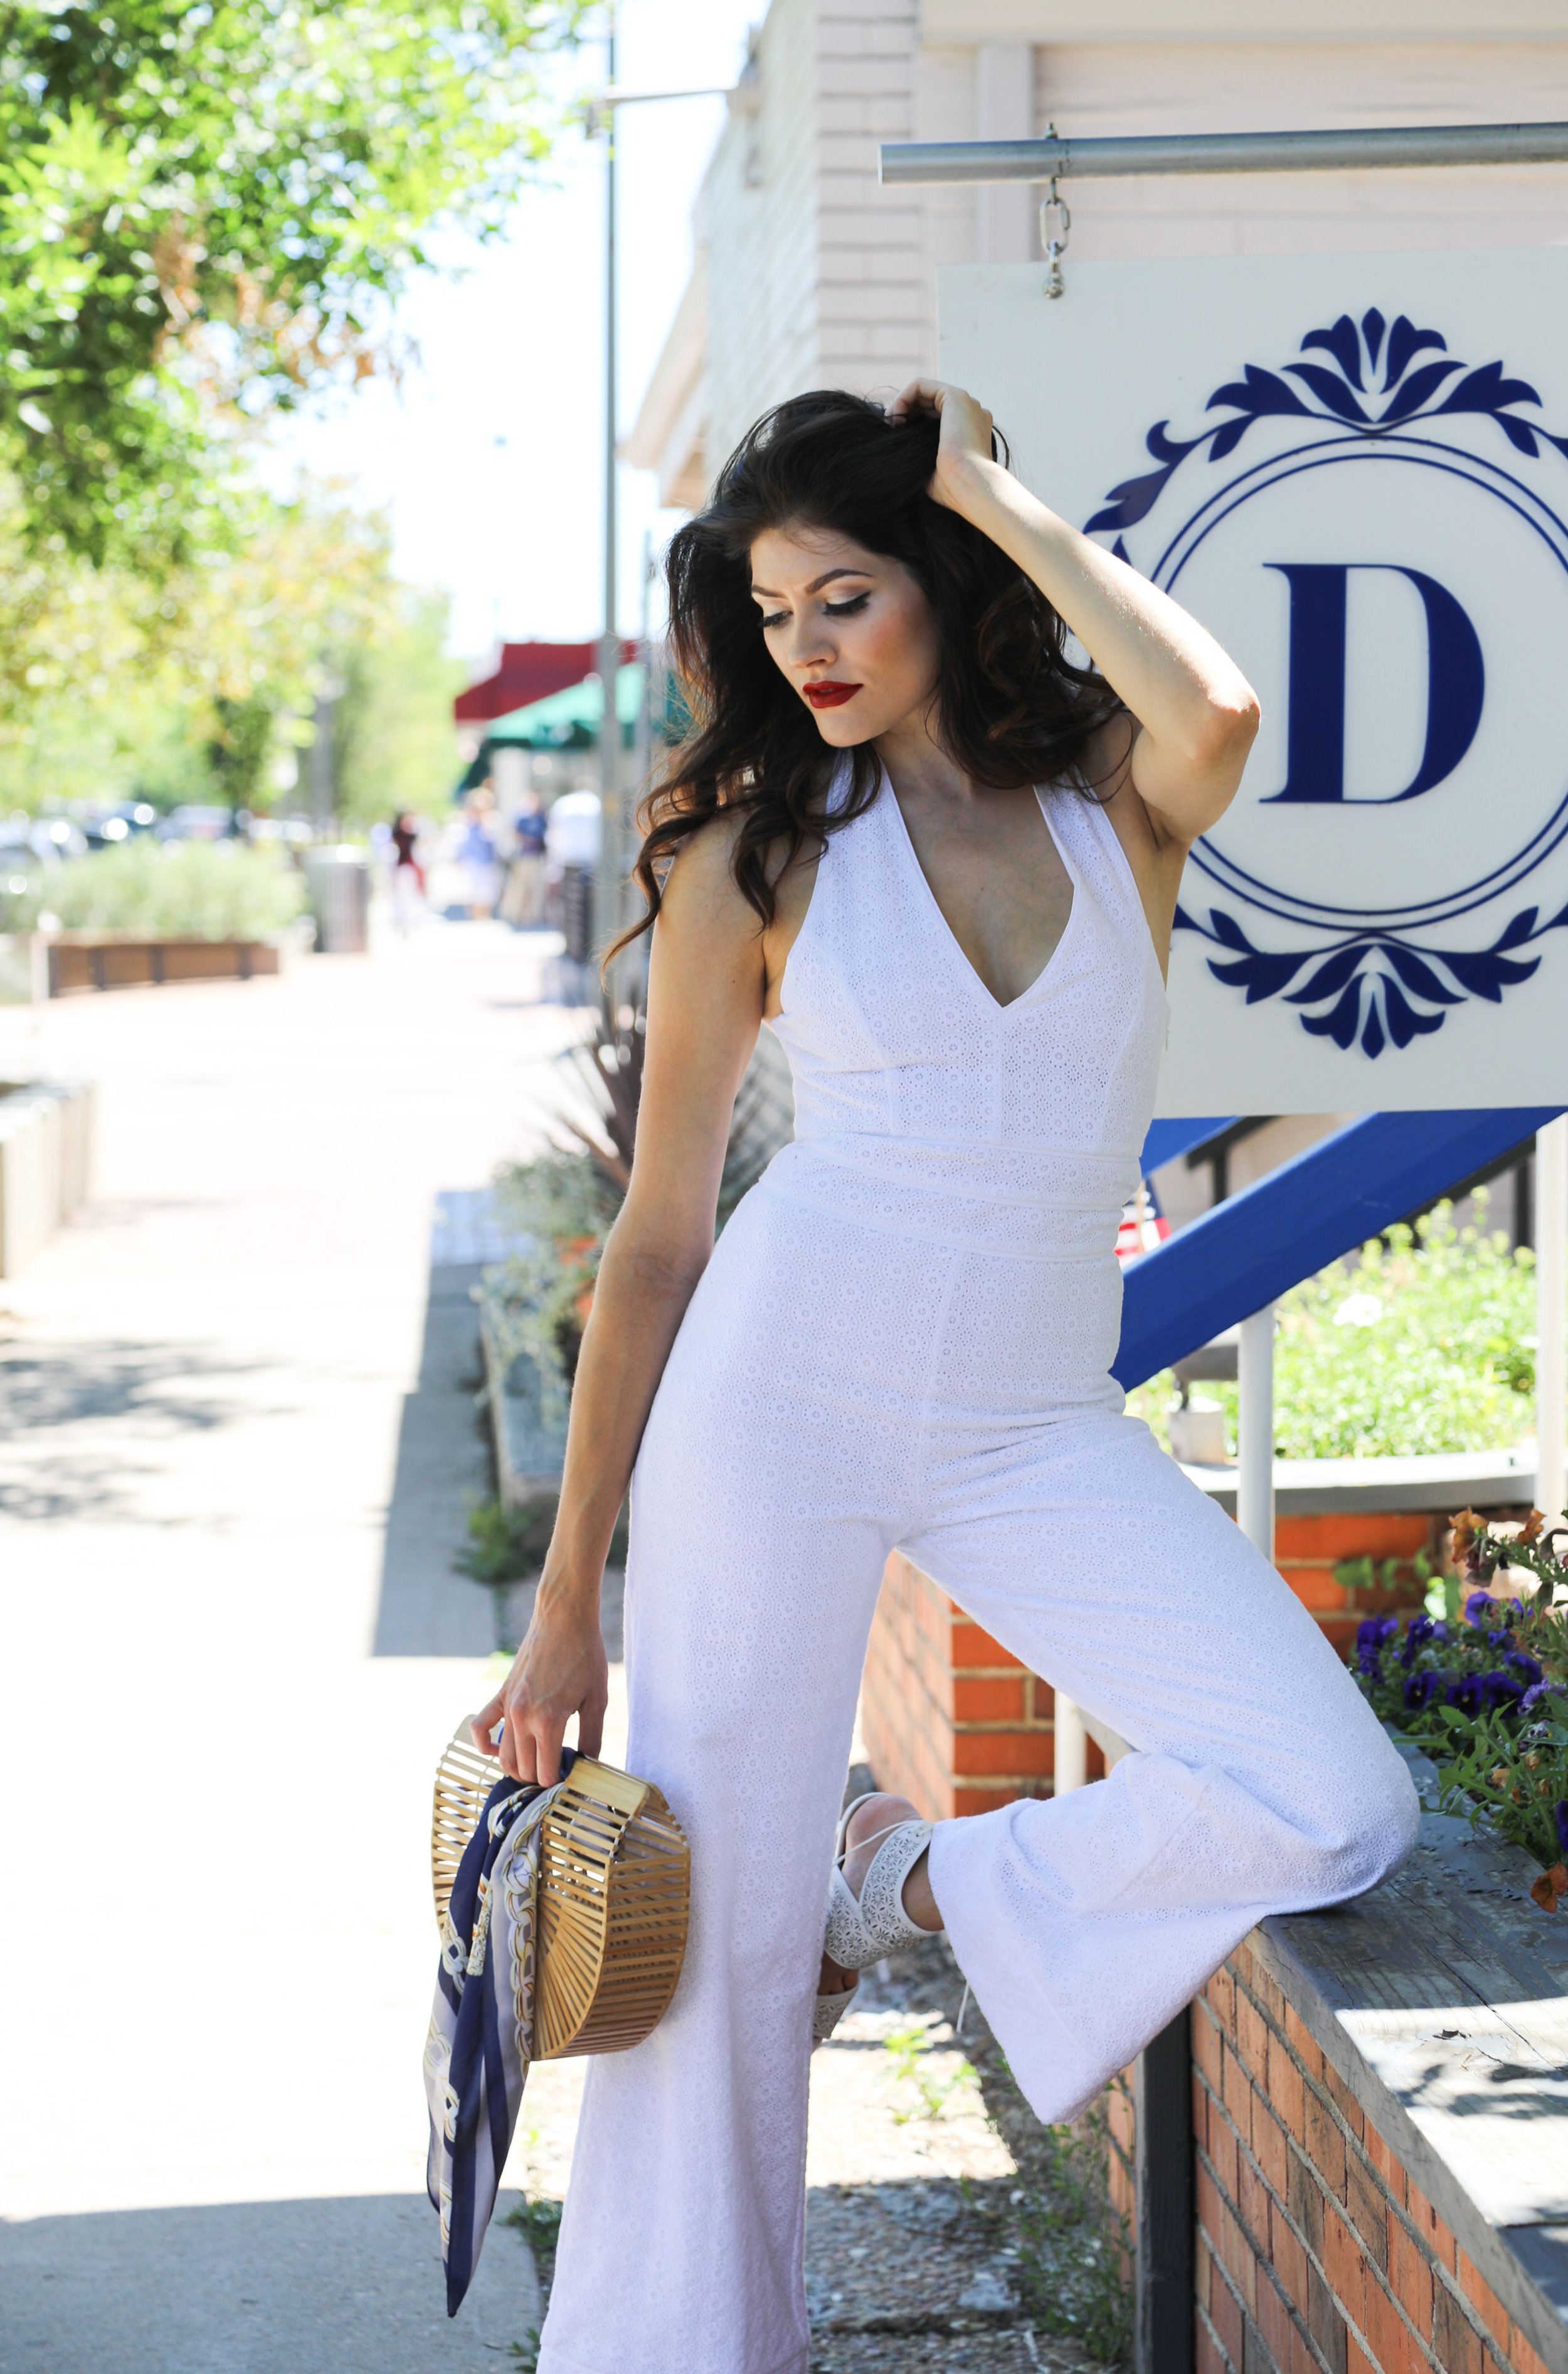 Hailey at Denver Darling Boutique on 3rd Avenue between Columbine and Josephine Streets wearing a white Lauren James Bridgette Jumpsuit.